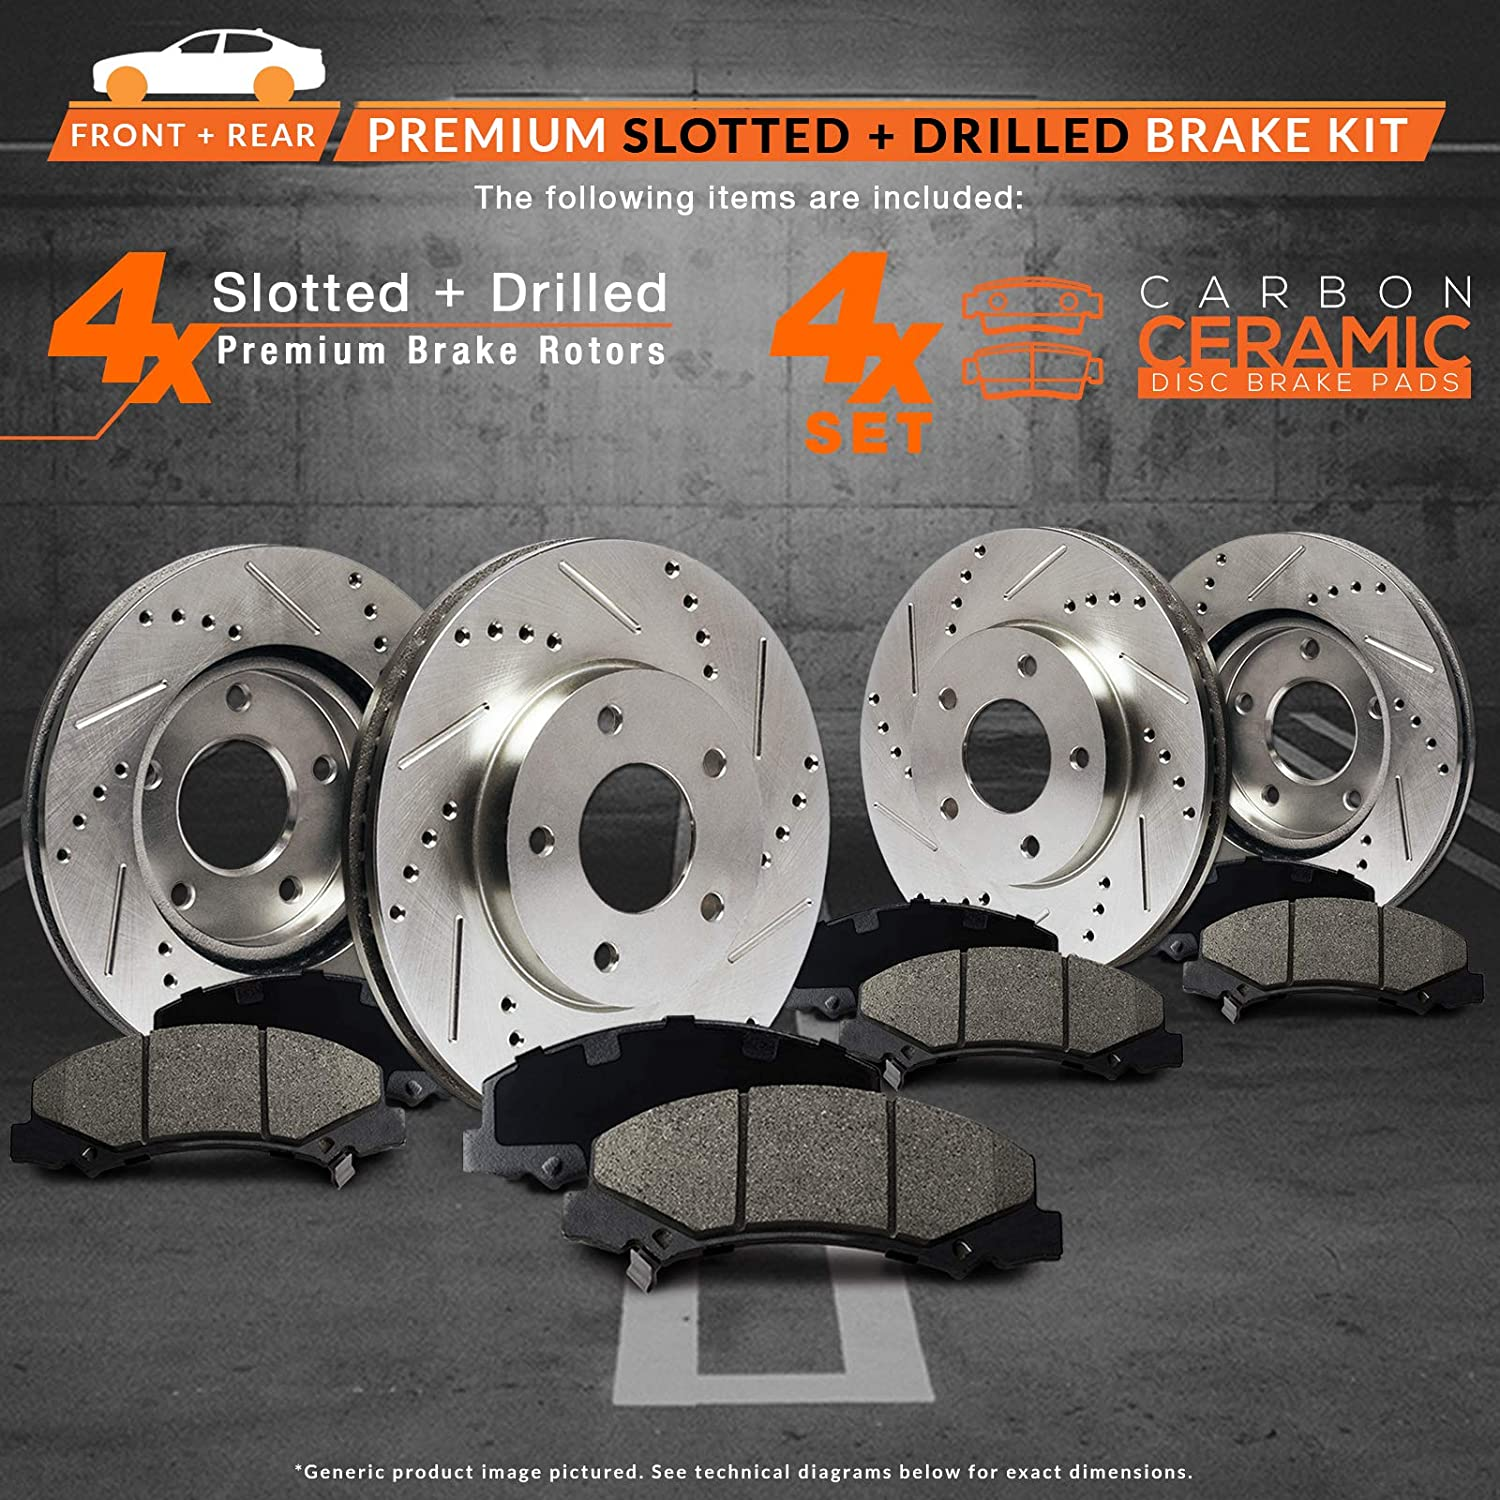 Premium Slotted Drilled Rotors + Ceramic Pads Max Brakes Front /& Rear Performance Brake Kit KT061333 Fits: 2005-2007 Ford Freestyle 500 Mercury Montego